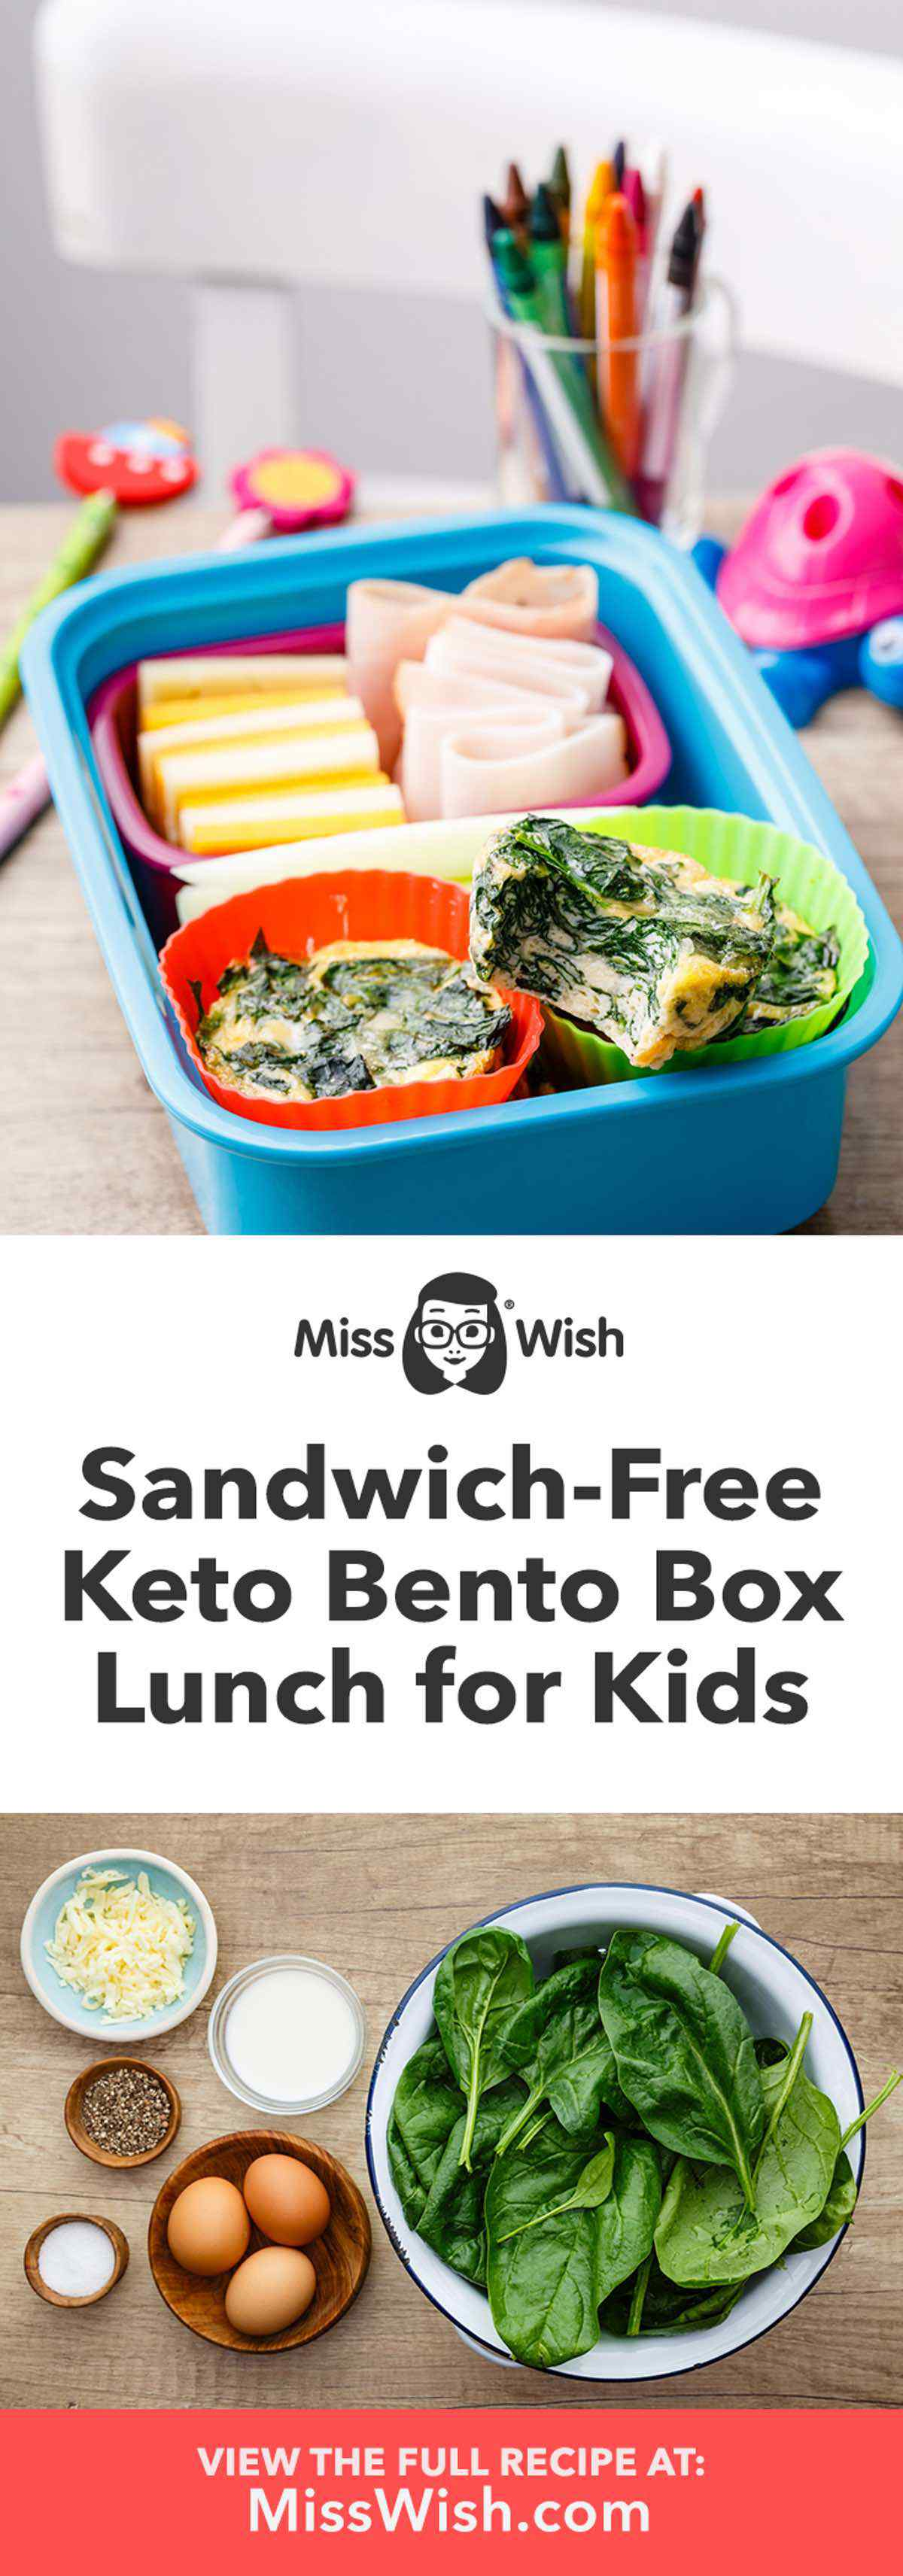 Keto Kids Lunch